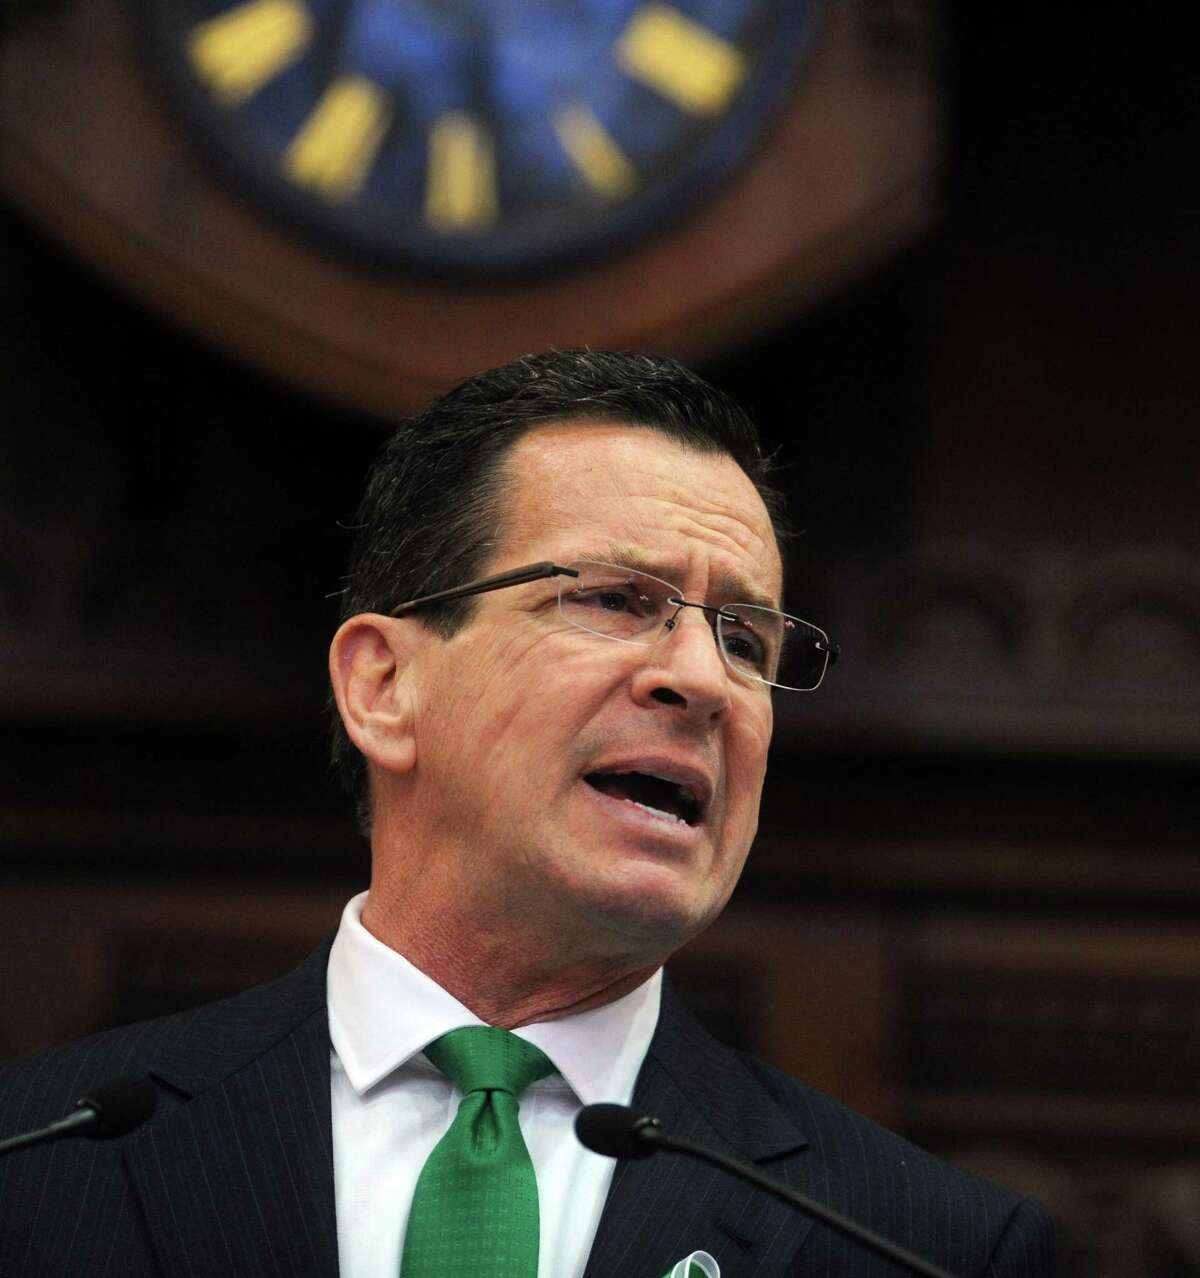 Gov. Dannel Malloy's 24 percent approval rating was recently updated in statewide voter-preference polls. If you know the recalibrated number, you might be able to win in Hearst CT Media's upcoming trivia night in the Half Full Brewery in Stamford. It will take place between 7 and 9 p.m. in the brewery, located at 43 Homestead Street.